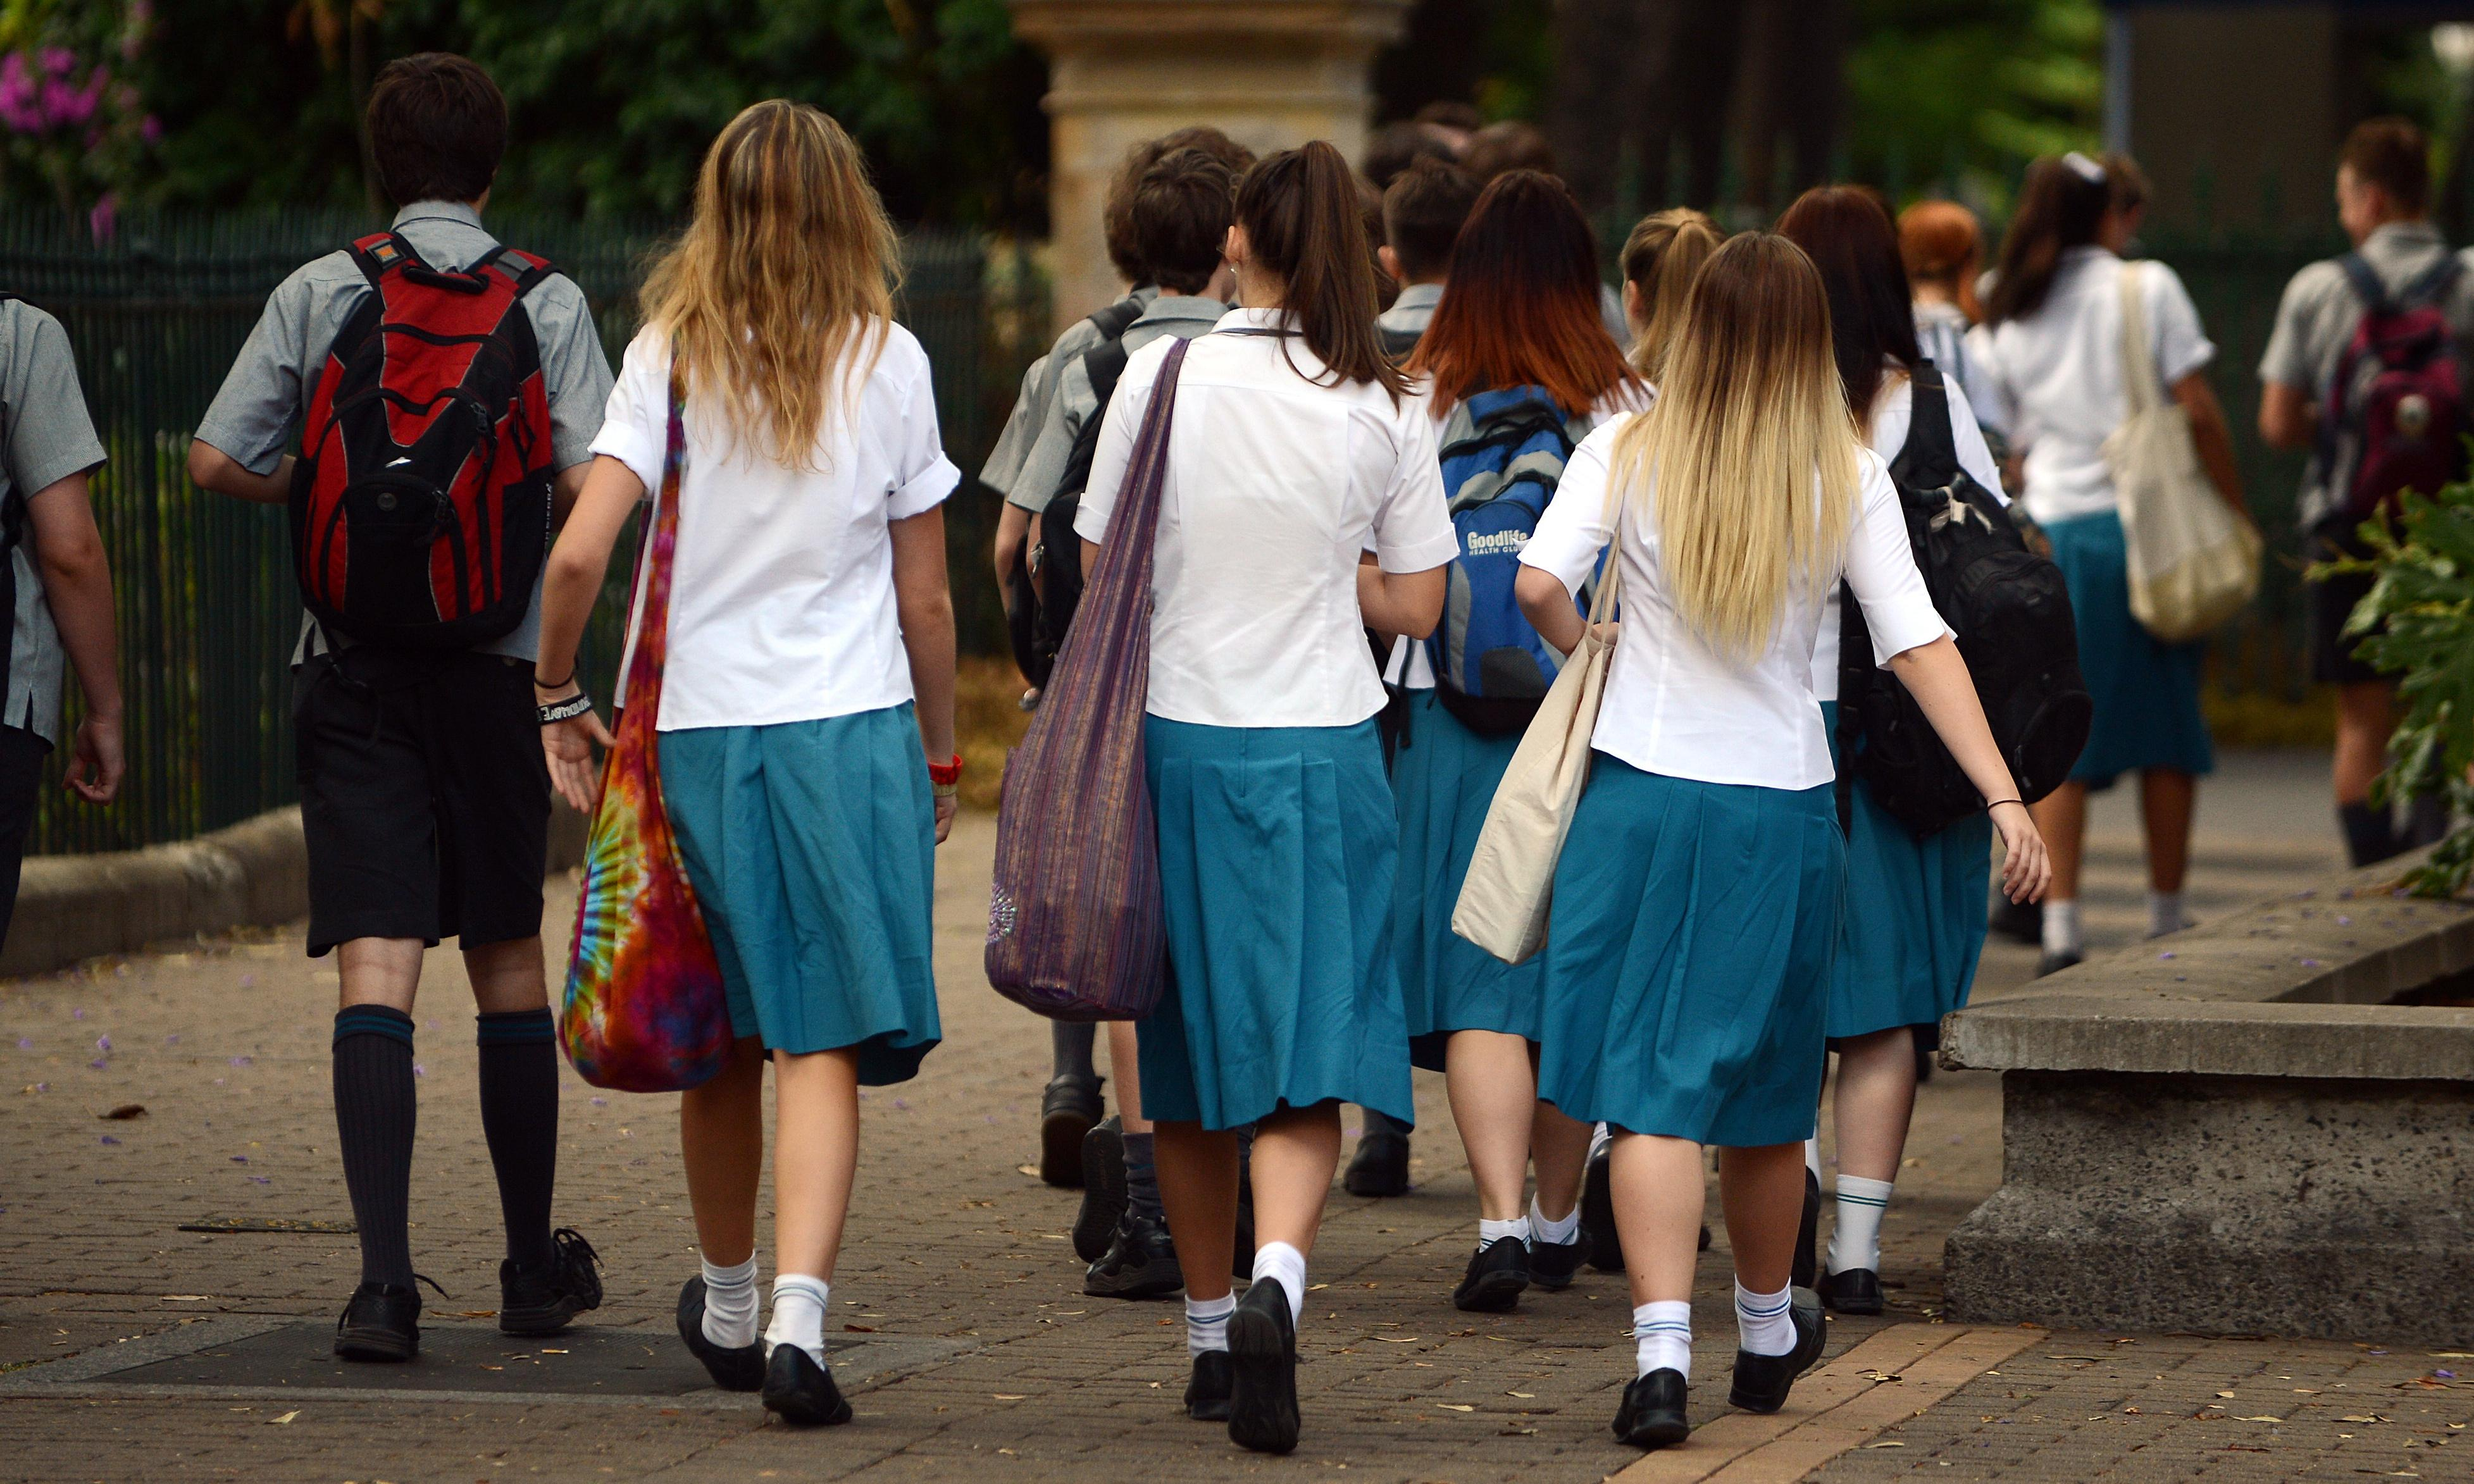 Call for national mobile phone ban in public schools to face resistance